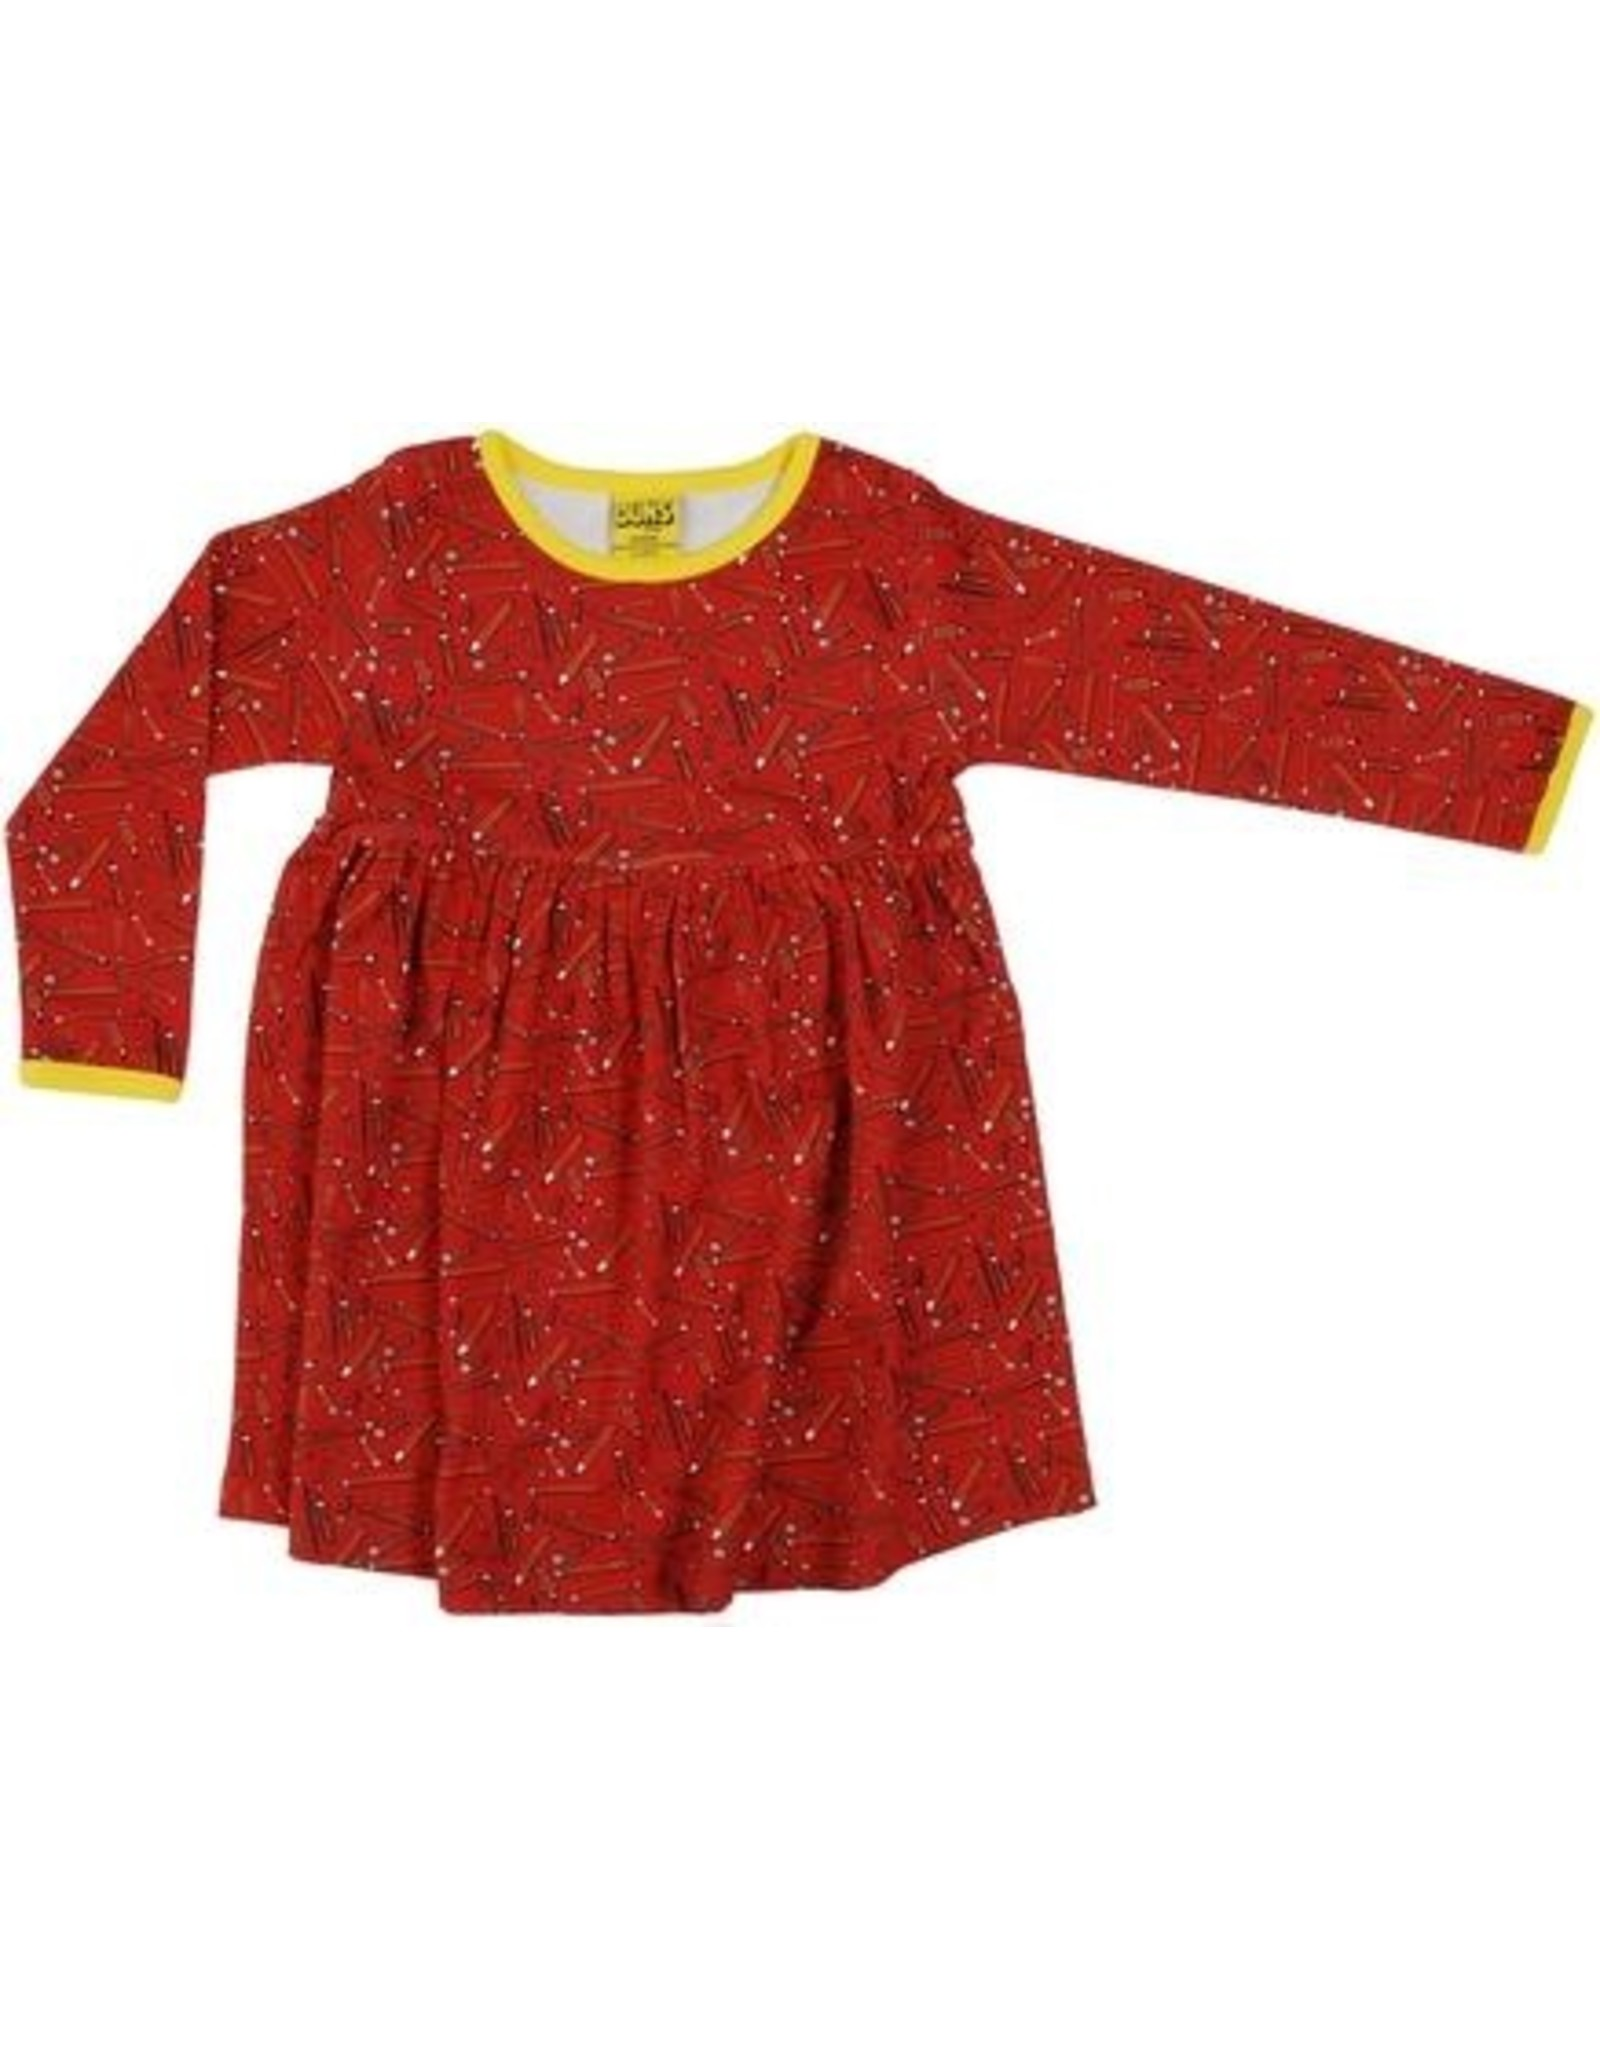 Duns Children's gather dress - red pencils